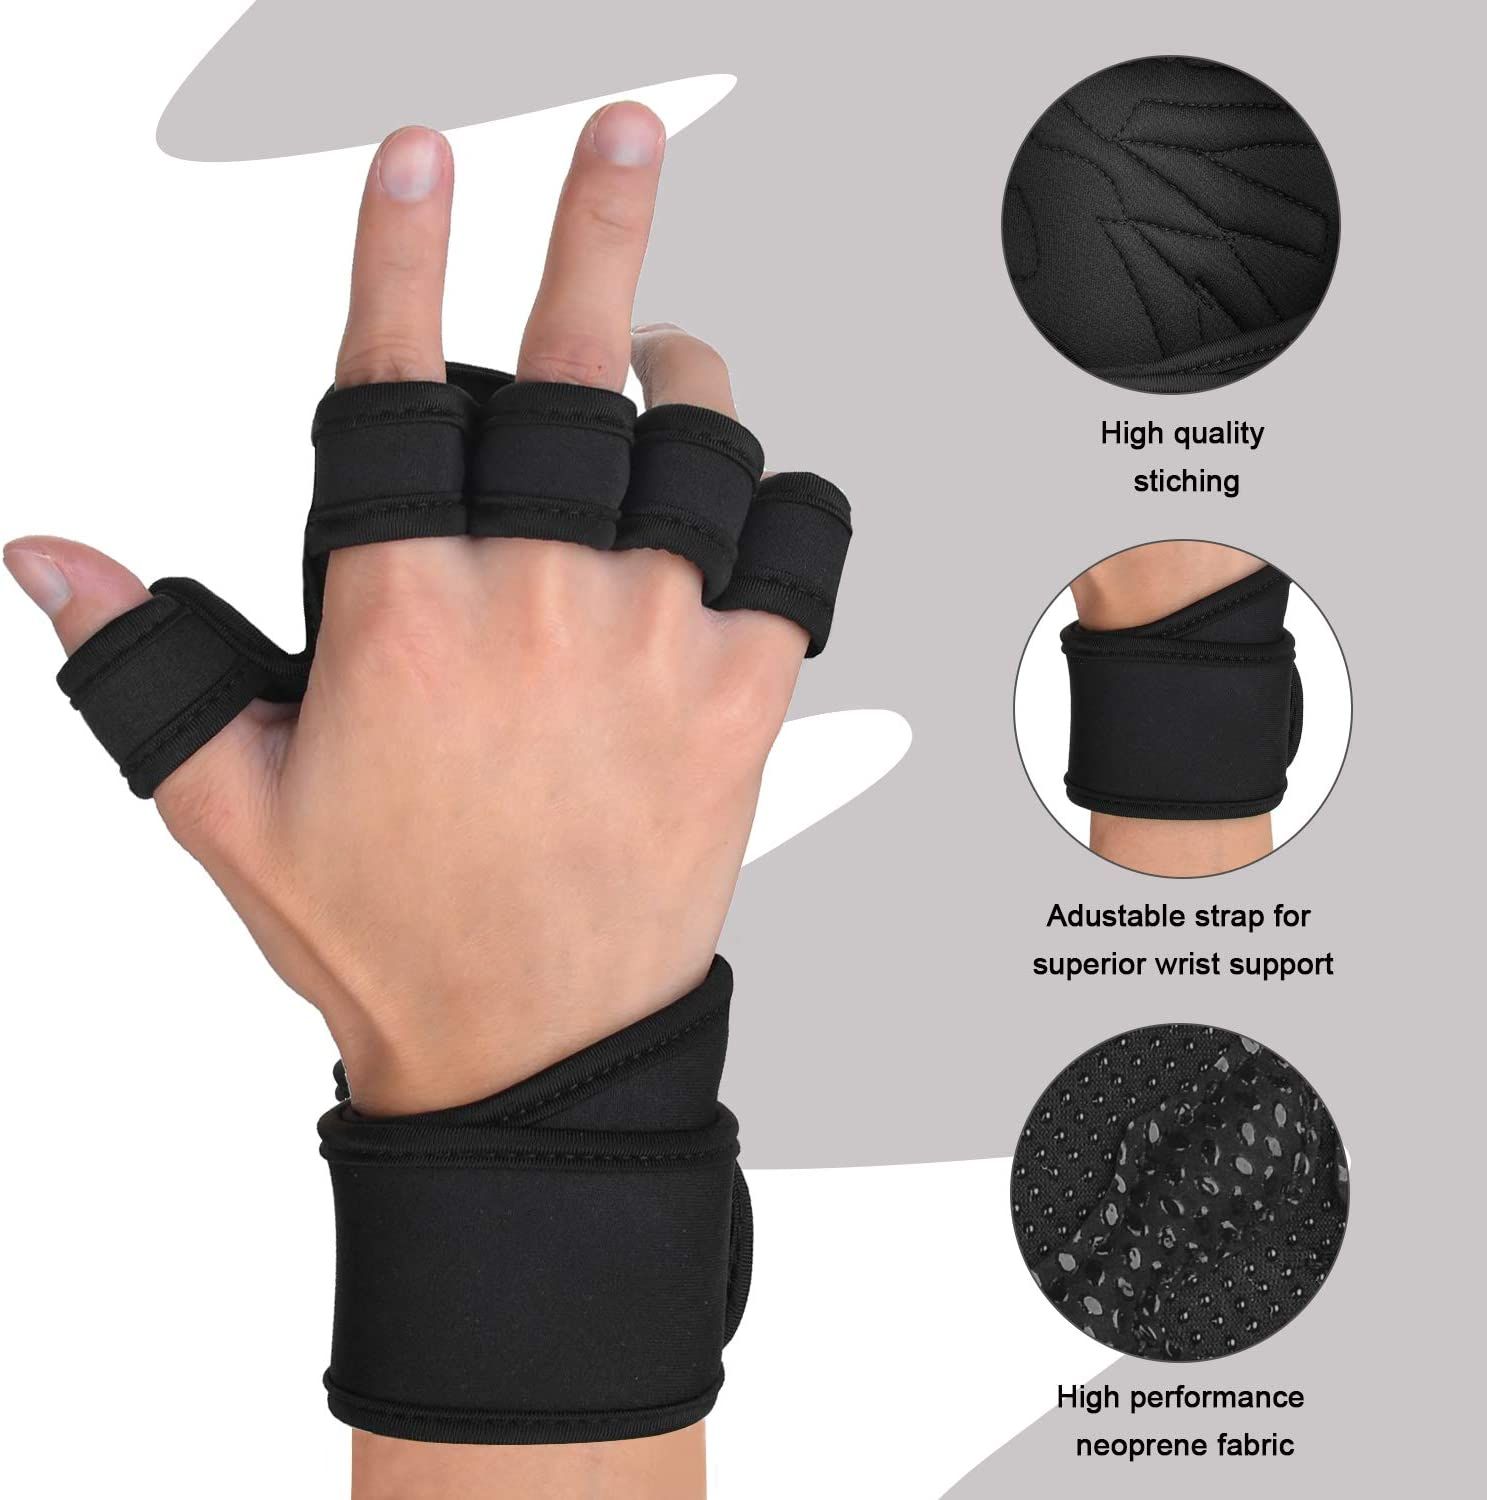 Fitness,Training S Eamber Full Palm Open Ventilated Workout Gloves with Adjustable Stable Wrist Wraps Thick Palm Padding No Calluses and Injuried Perfect for Weight Lifting,Pull Ups